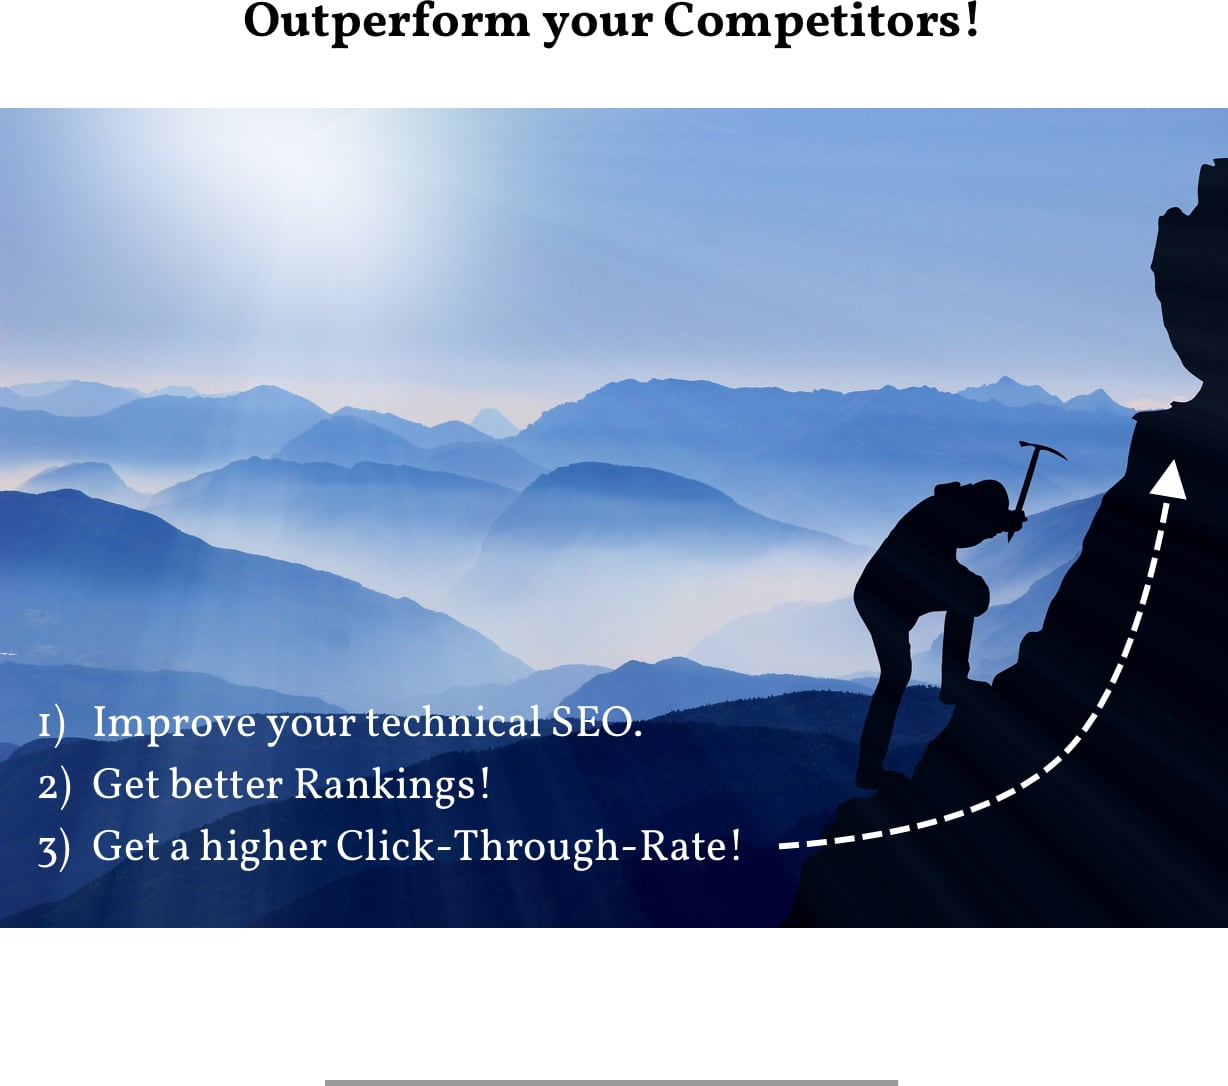 Outperform your competitors by improving your technical SEO, get better rankings and get a higher Click-Through-Rate.